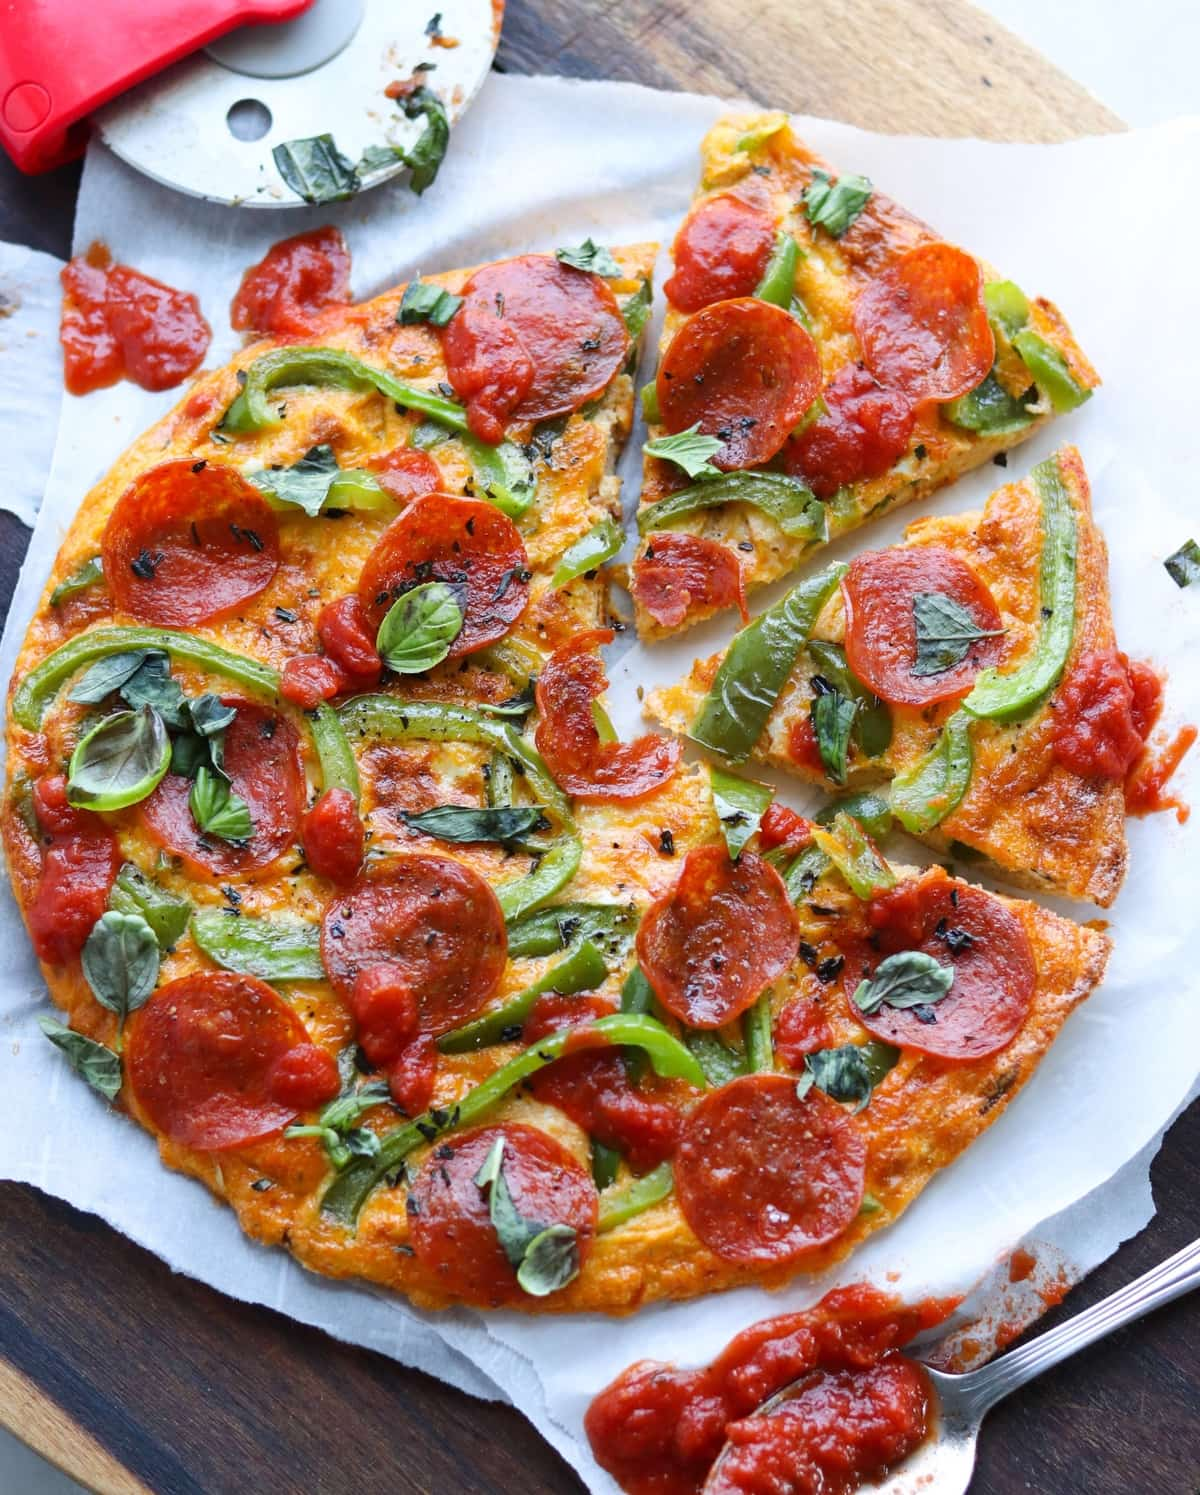 The finished and sliced pepperoni pizza frittata on a cutting board.